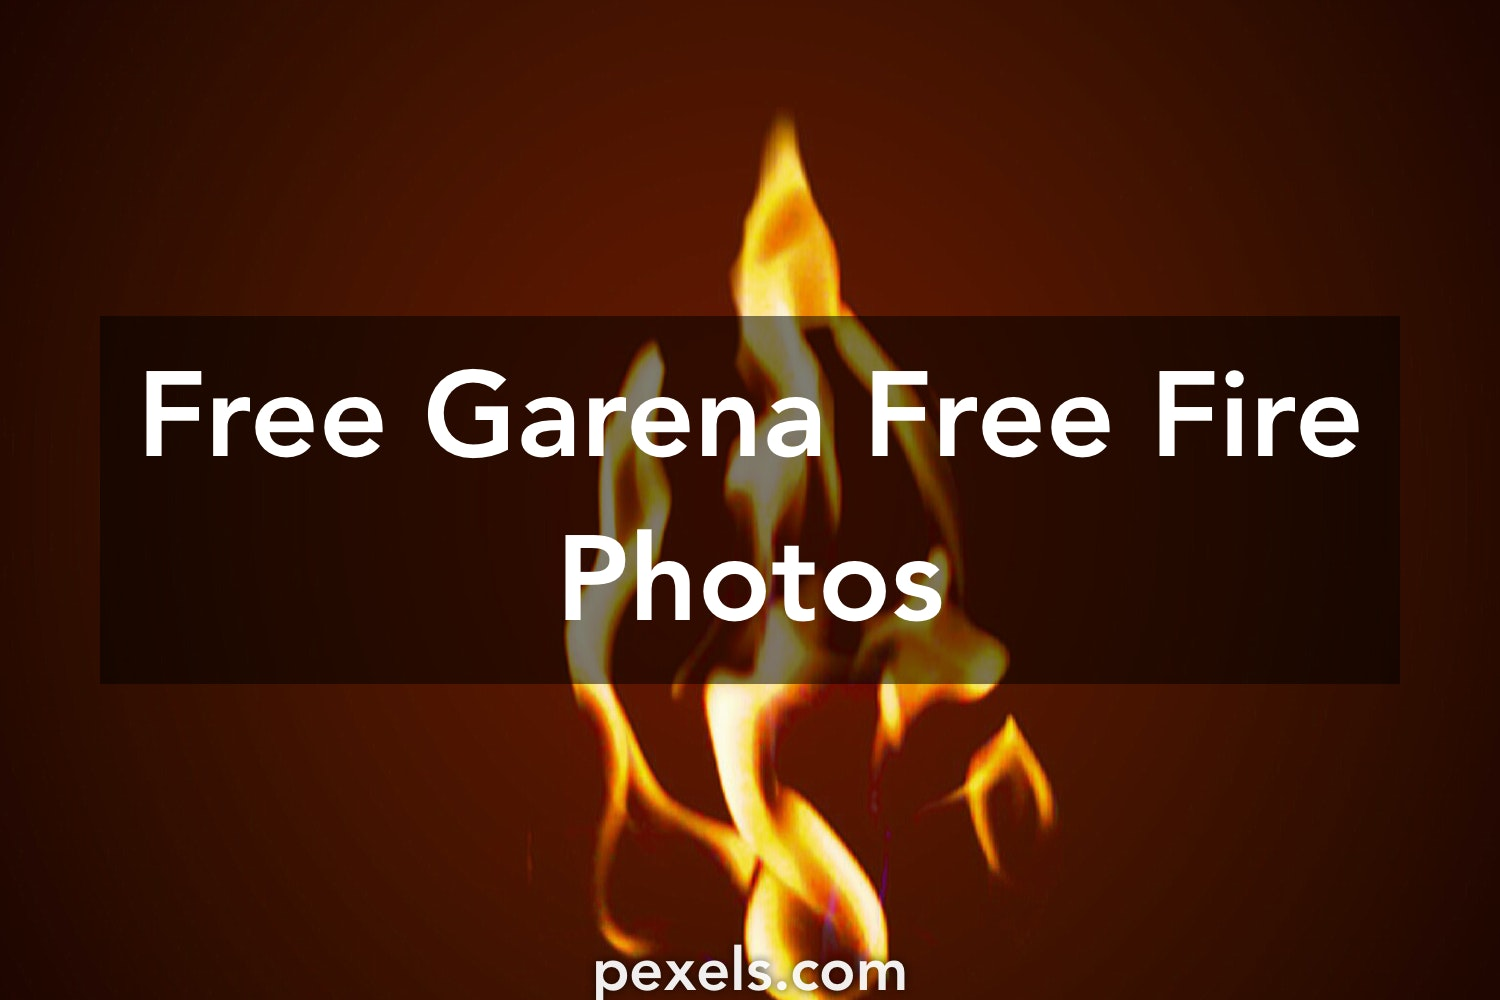 500 Great Garena Free Fire Photos Pexels Free Stock Photos